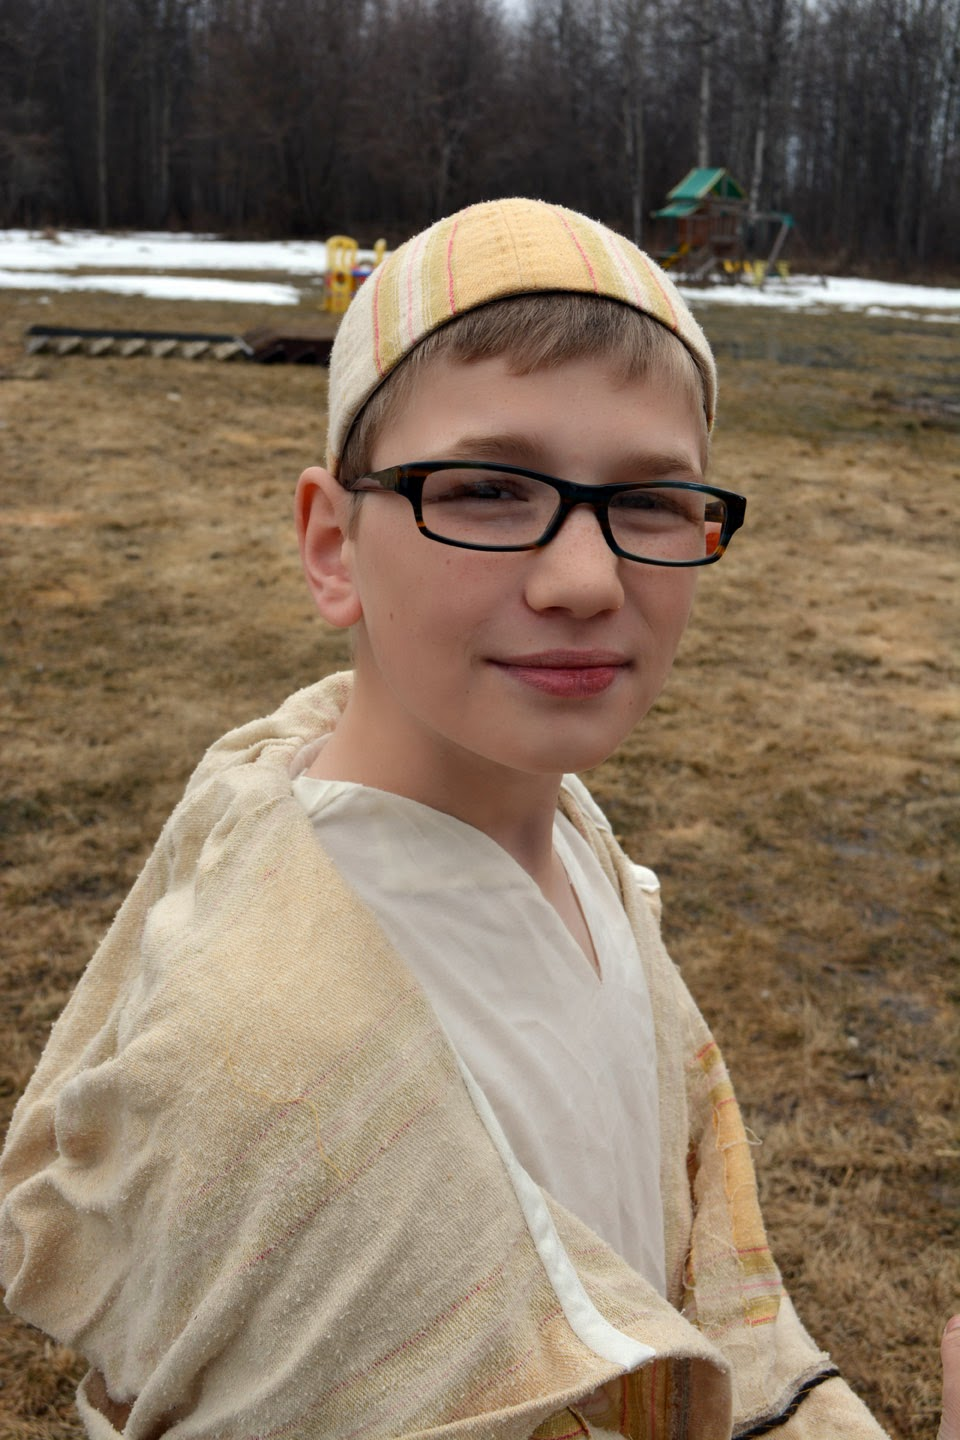 Little shepherd boy--with glasses?